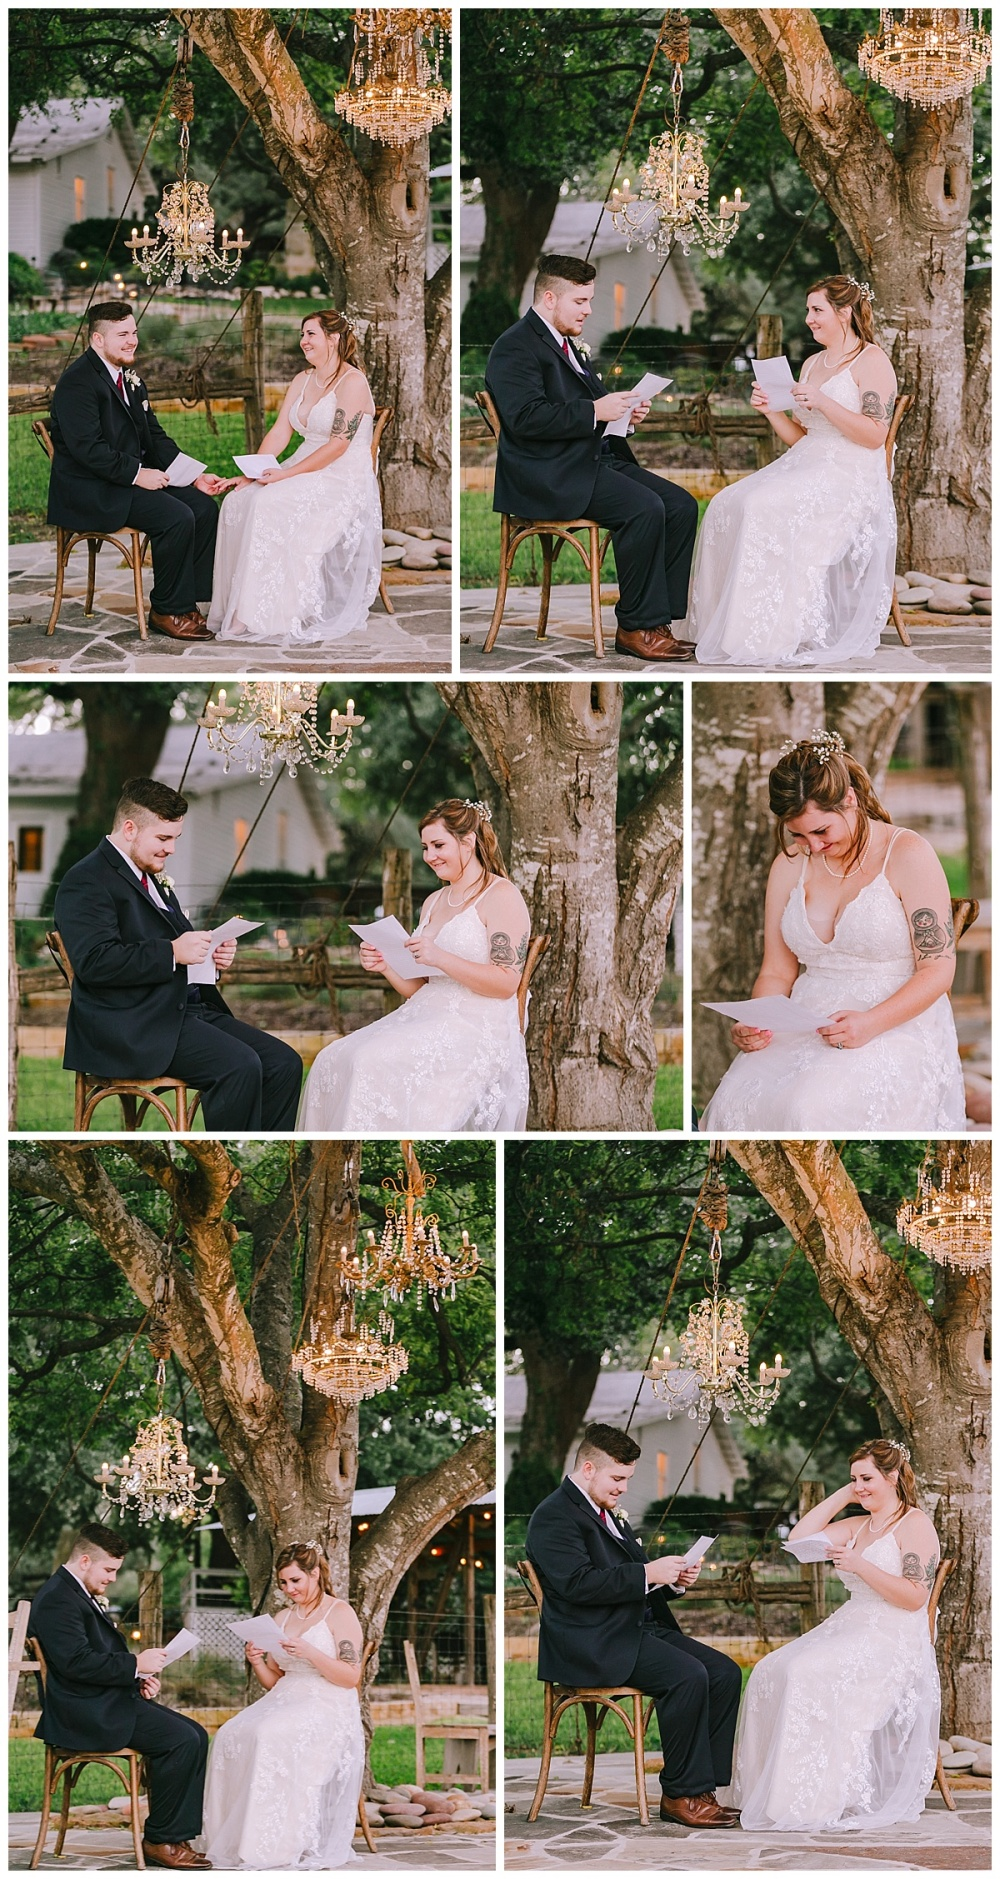 Texas-Wedding-Photographer-Gruene-Estate-Open-Air-Chapel-Carly-Barton-Photography-Katie-Nic_0059.jpg